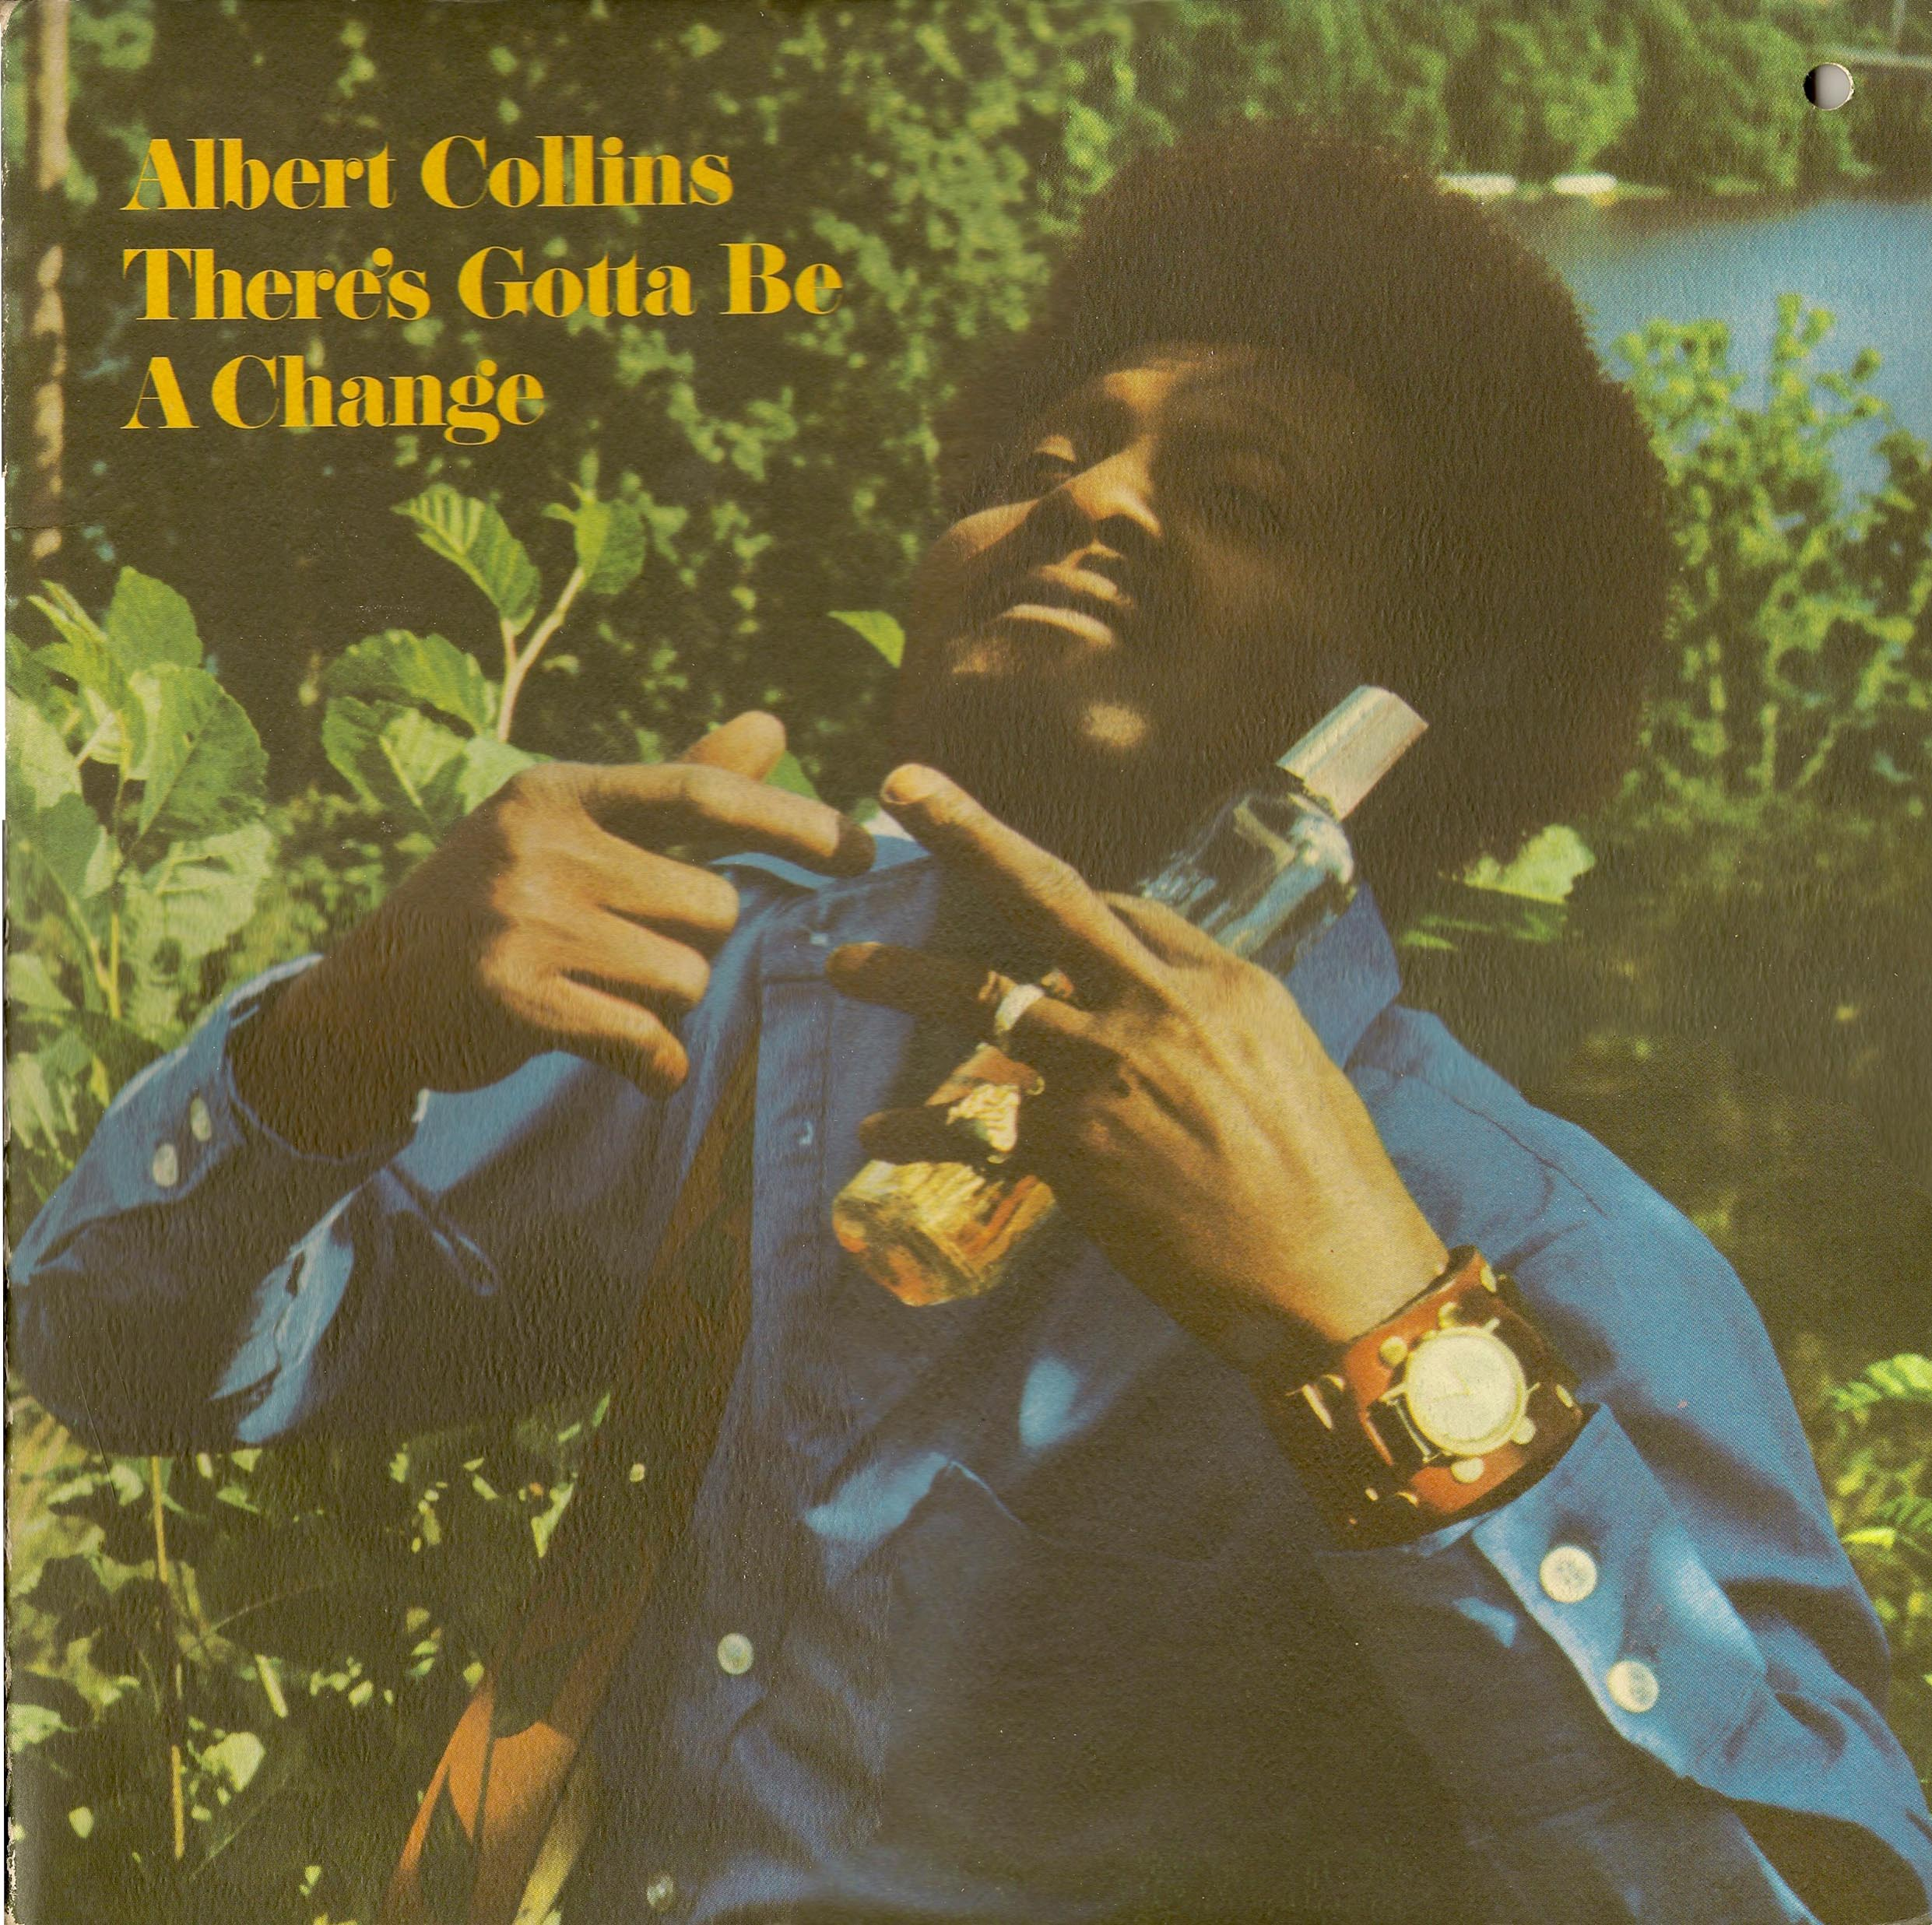 1971 Albert Collins – There's Gotta Be A Change